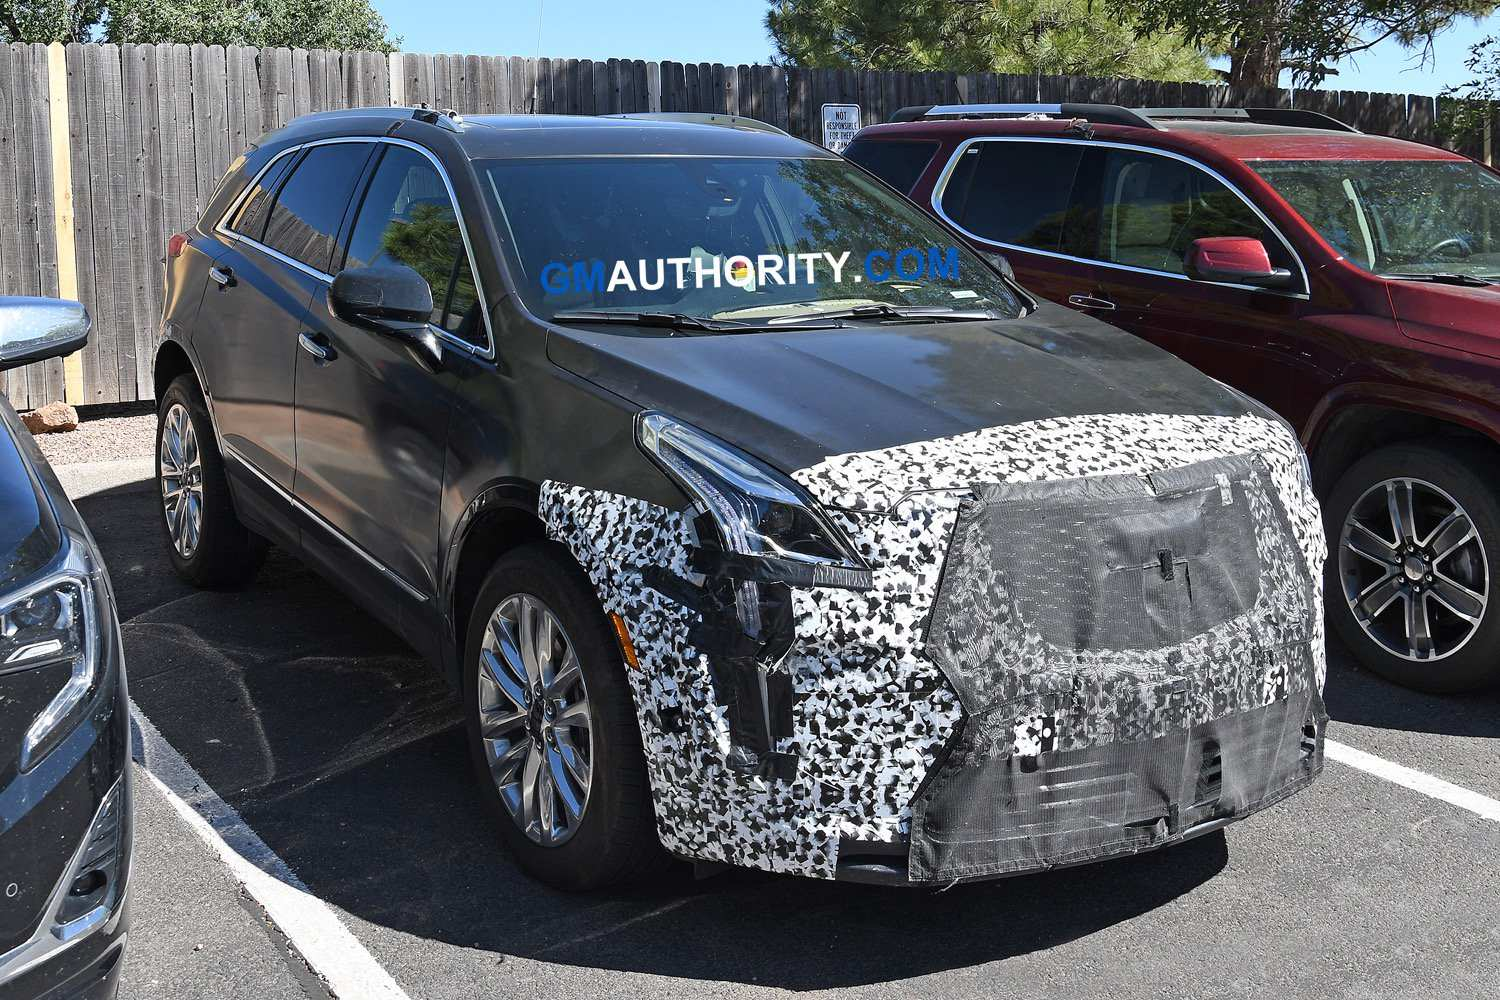 22 Best Review 2019 Spy Shots Cadillac Xt5 Ratings by 2019 Spy Shots Cadillac Xt5